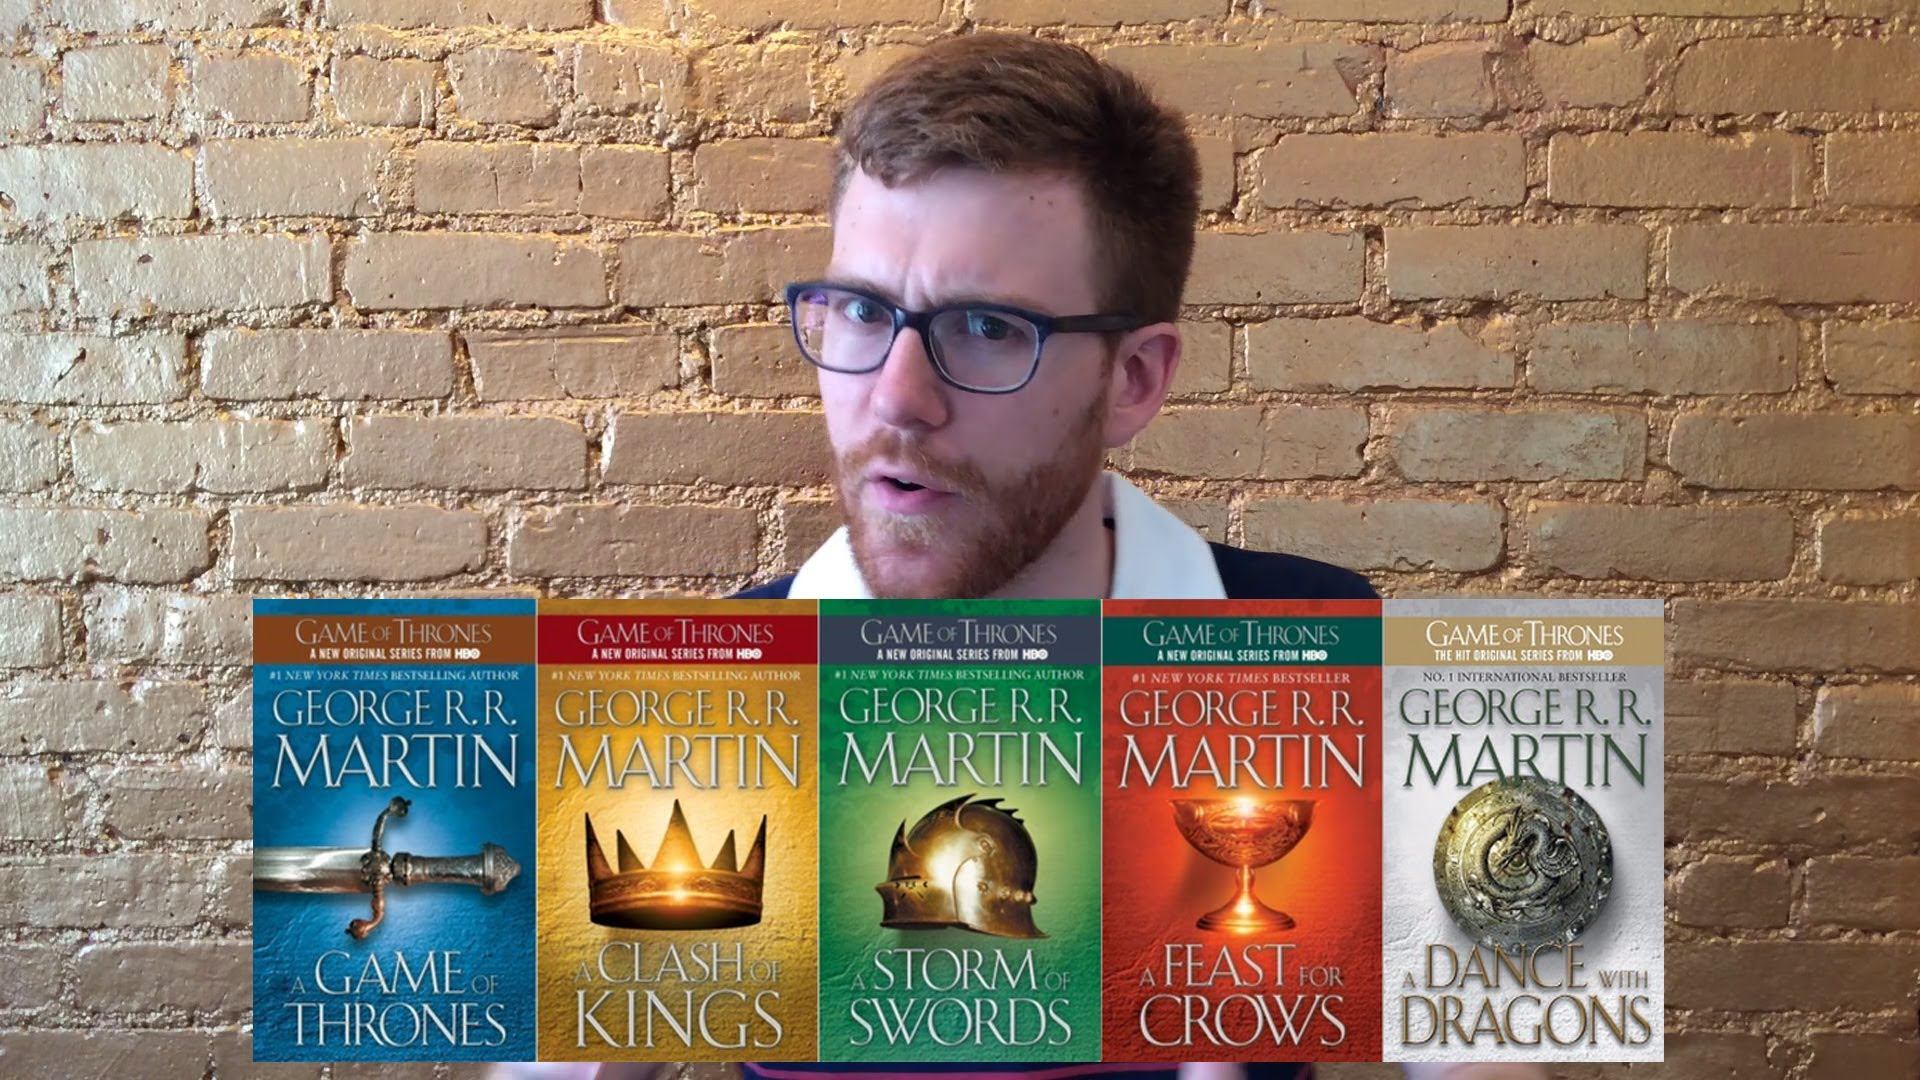 An Attempt to Explain the Entire 'A Song of Ice and Fire' Book Series in Two Minutes That Goes Horribly Awry